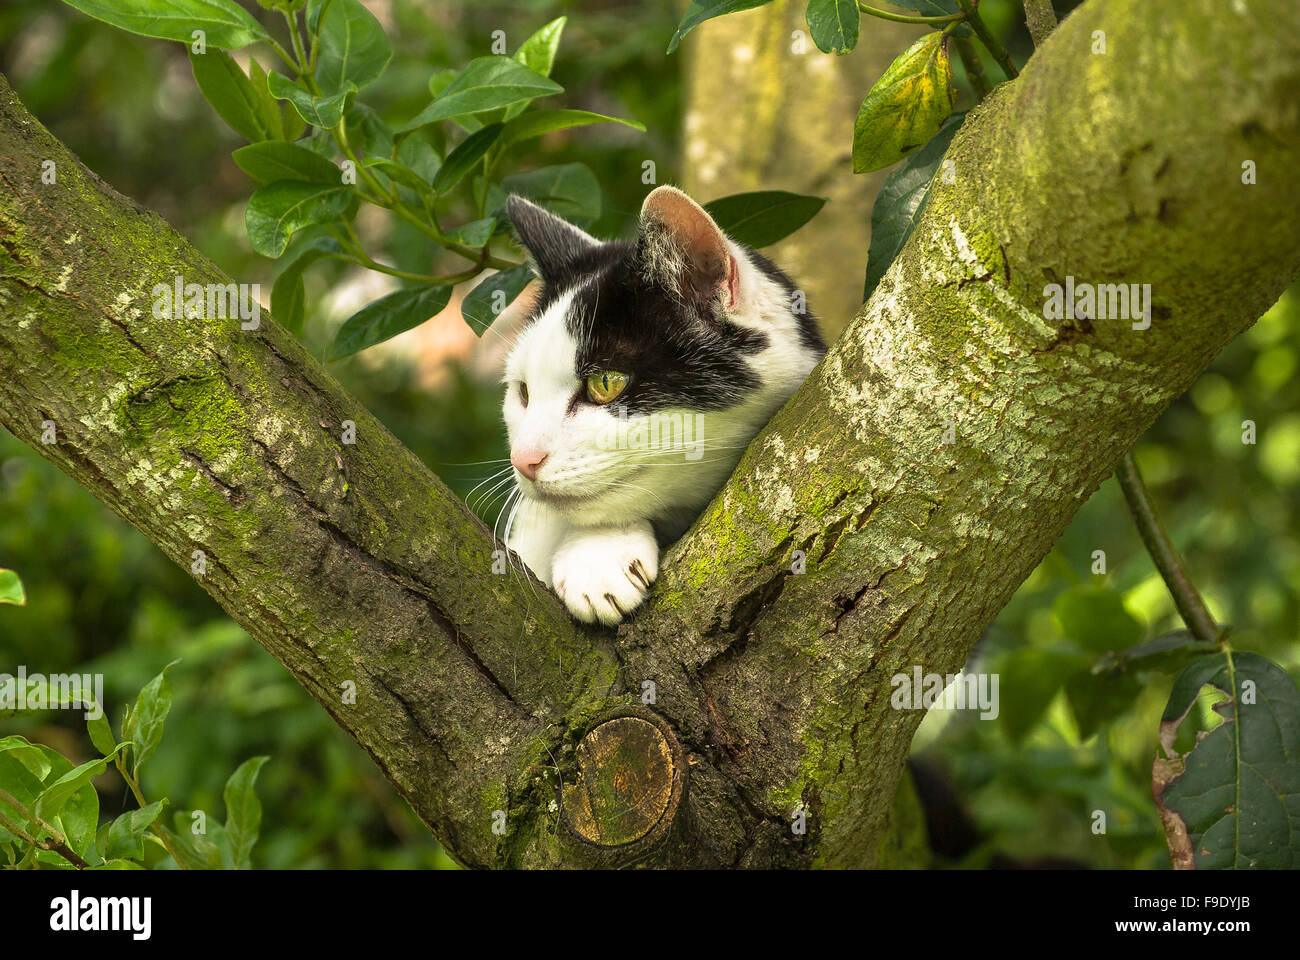 Black and white cat in a garden tree observing local activity - Stock Image